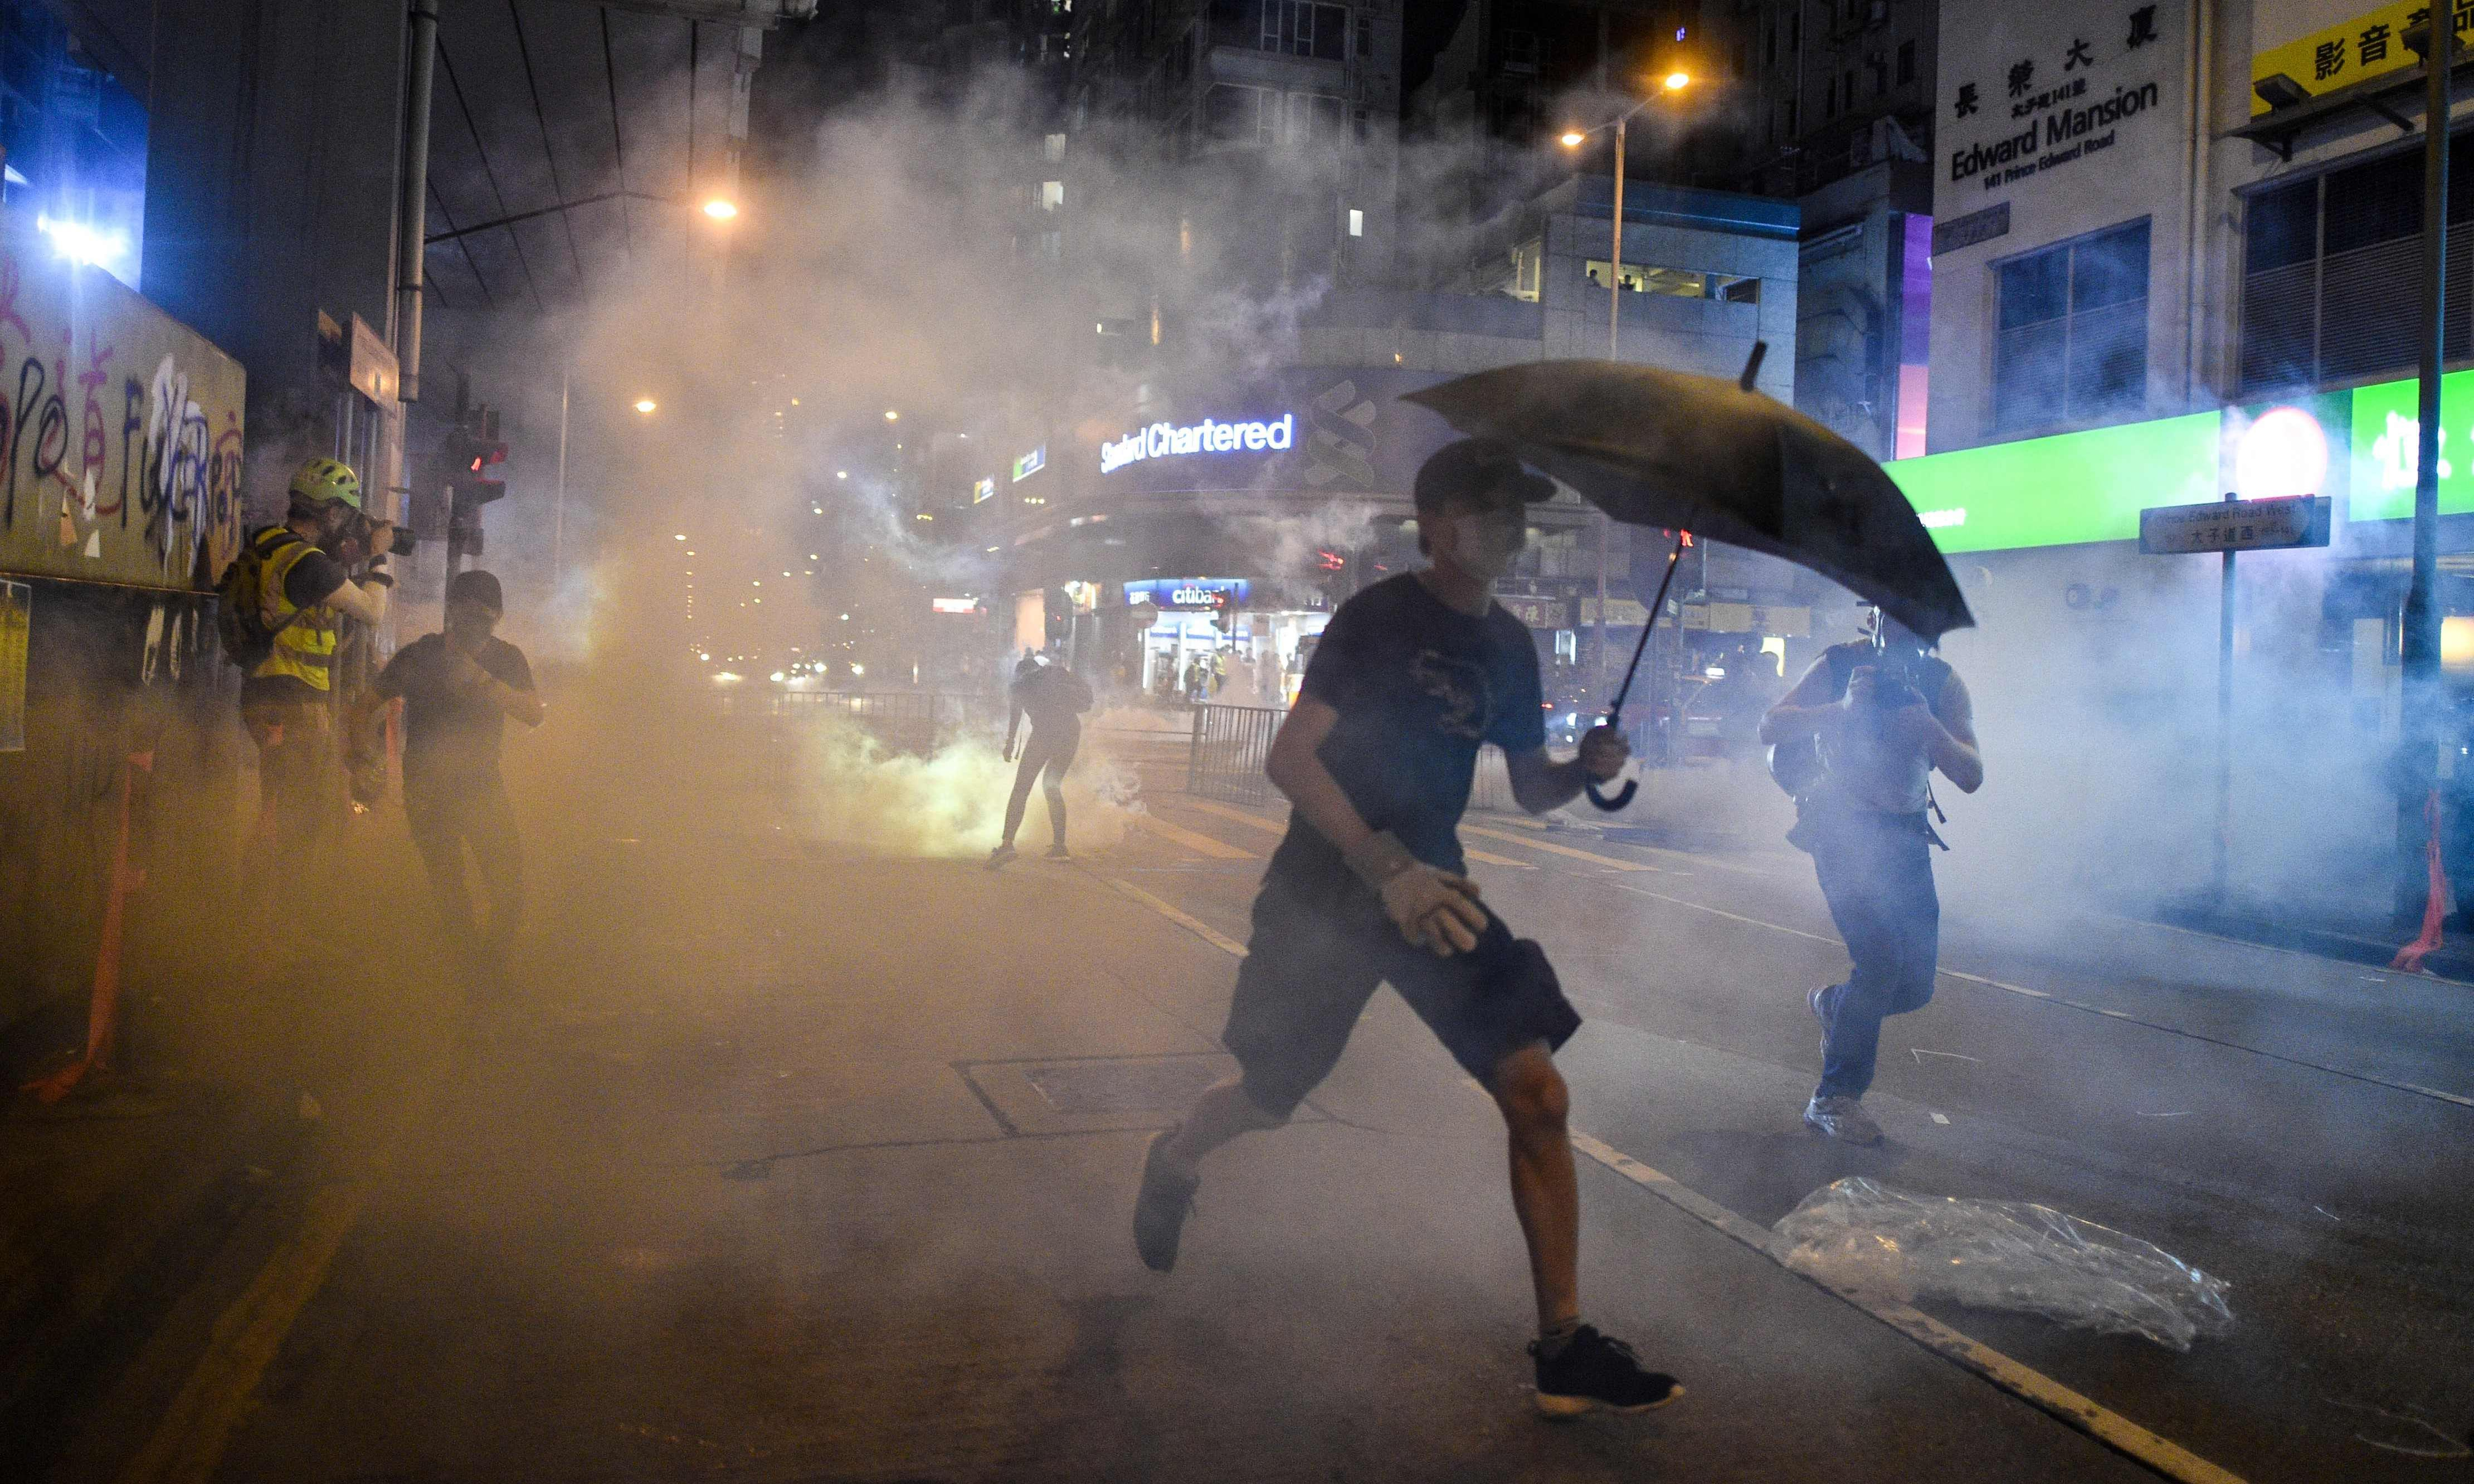 Hong Kong: Clashes as first charges brought under face mask ban law